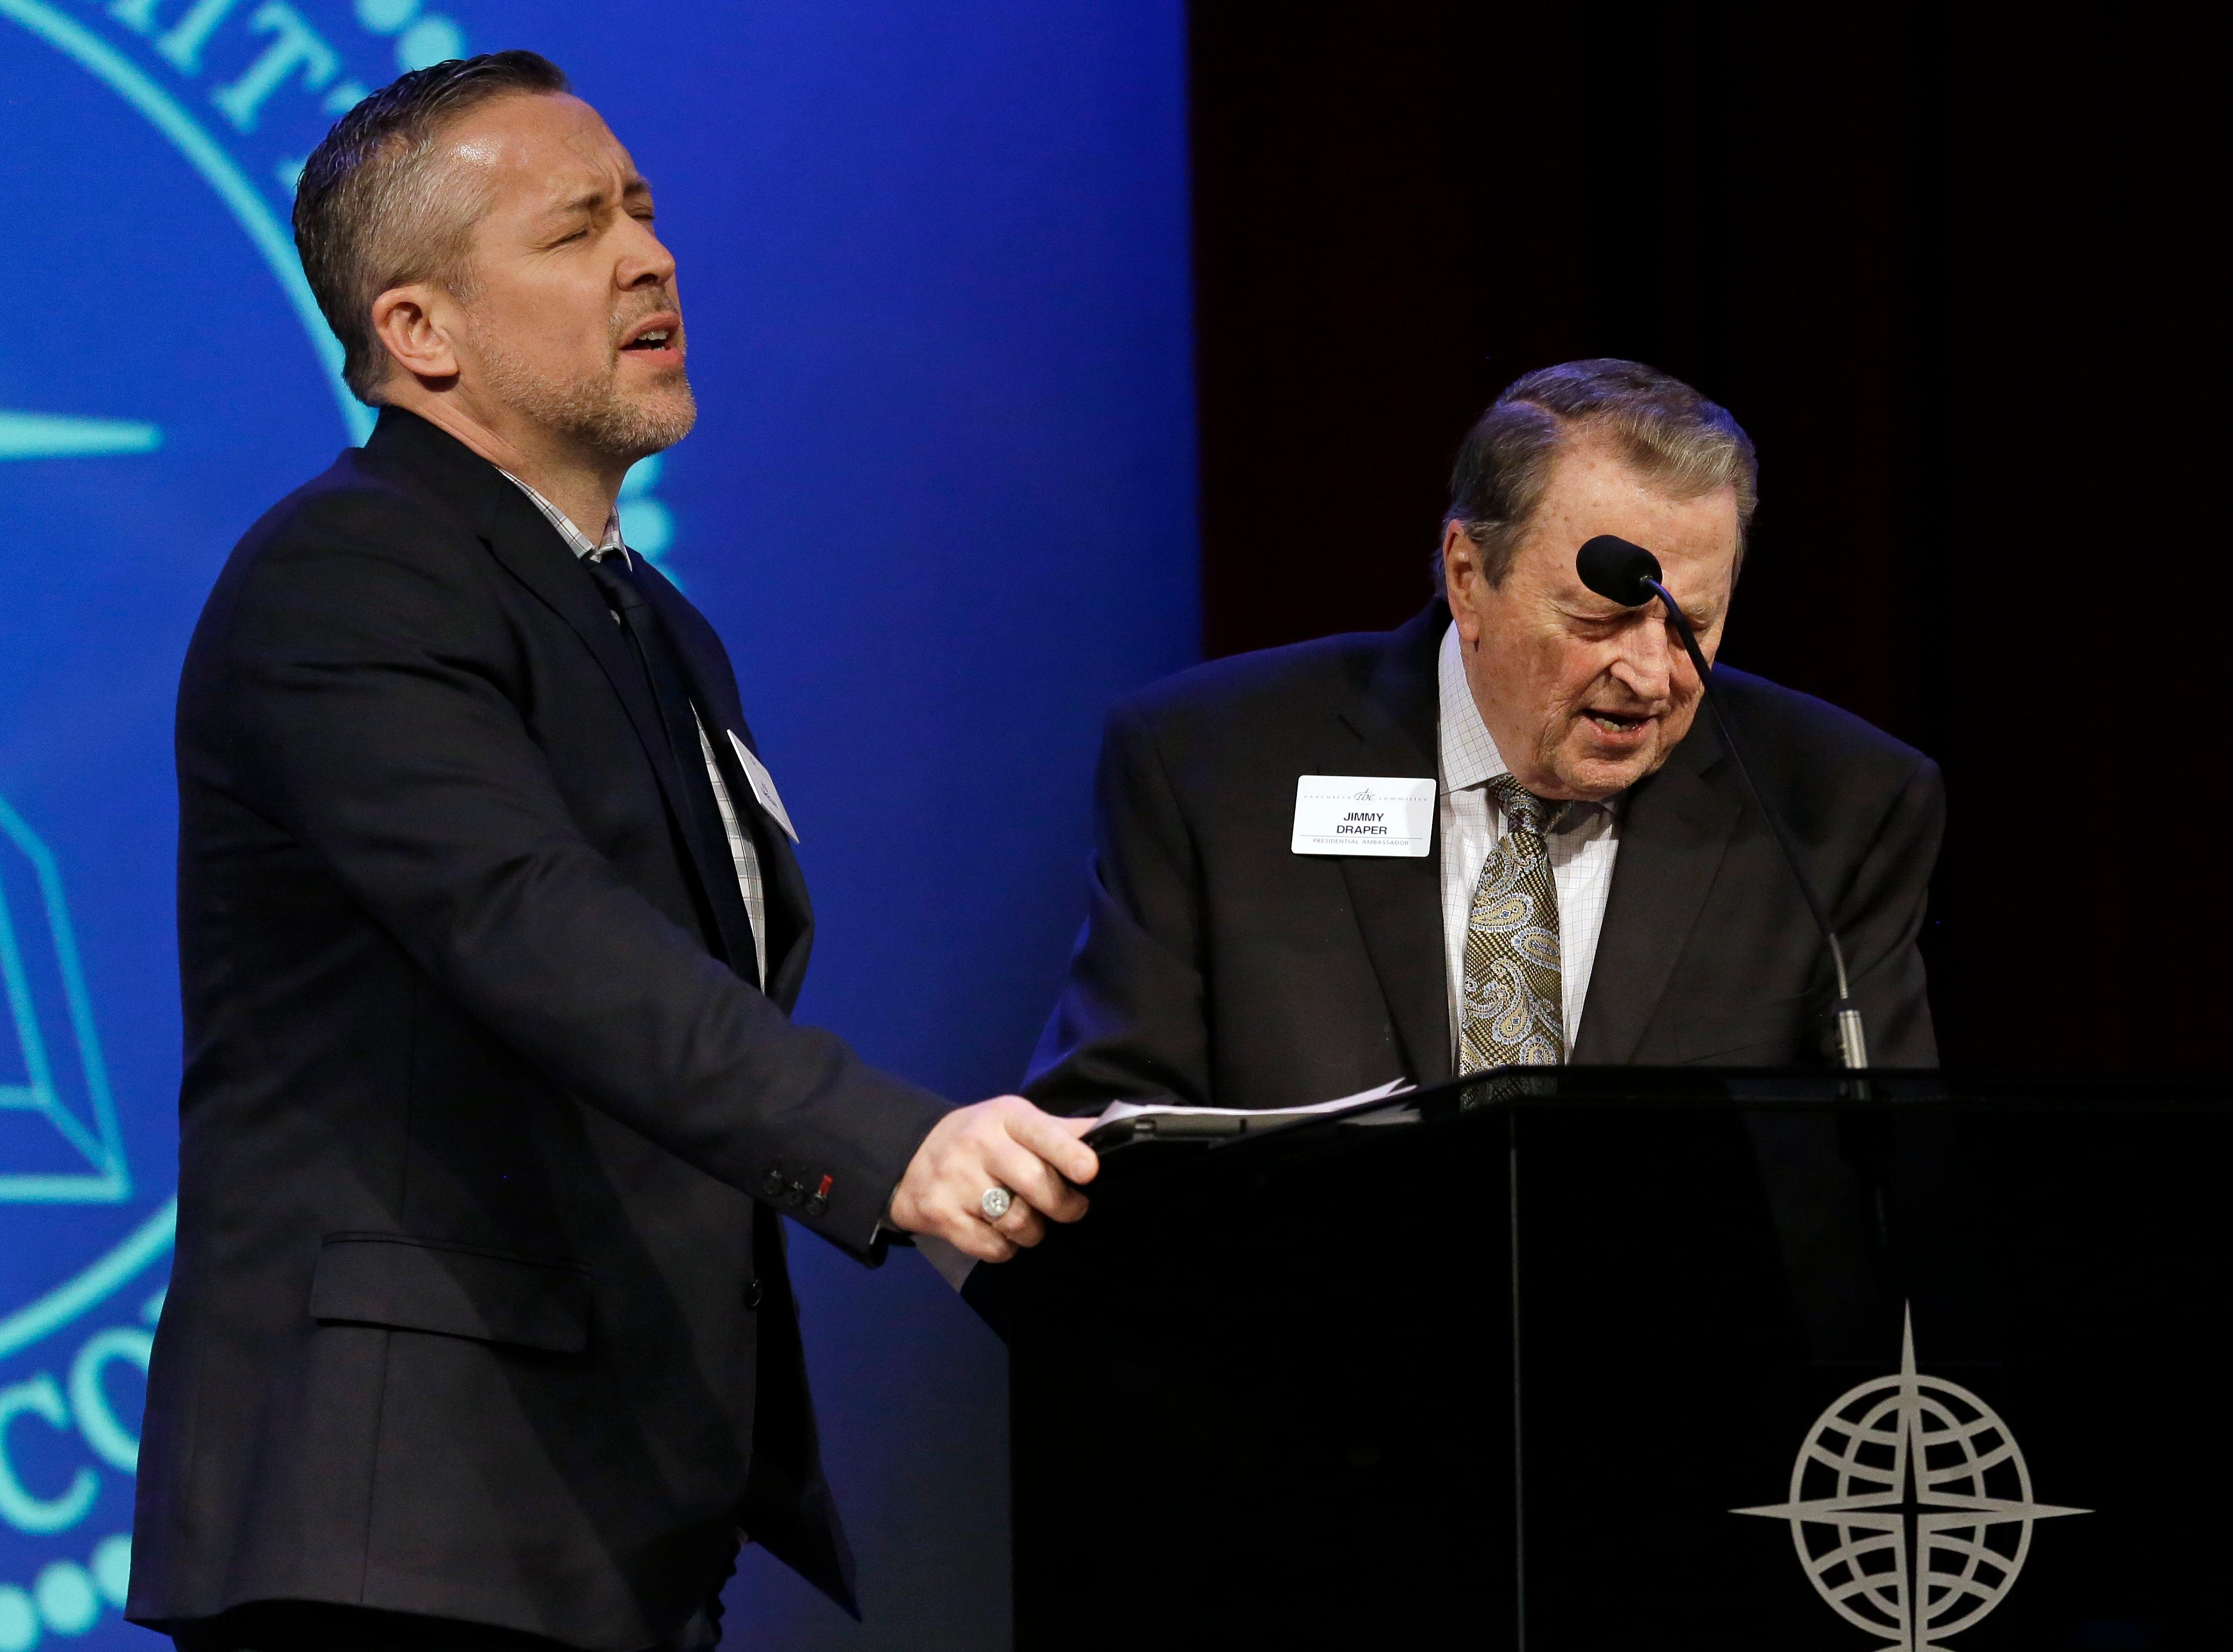 Southern Baptist Convention President J.D. Greear, left, prays with Jimmy Draper, right, a former denomination president, before Greear spoke to the denomination's executive committee Monday, Feb. 18, 2019, in Nashville, Tenn. Just days after a newspaper investigation revealed hundreds of sexual abuse cases by Southern Baptist ministers and lay leaders over the past two decades, Greear spoke about plans to address the problem. (AP Photo/Mark Humphrey)